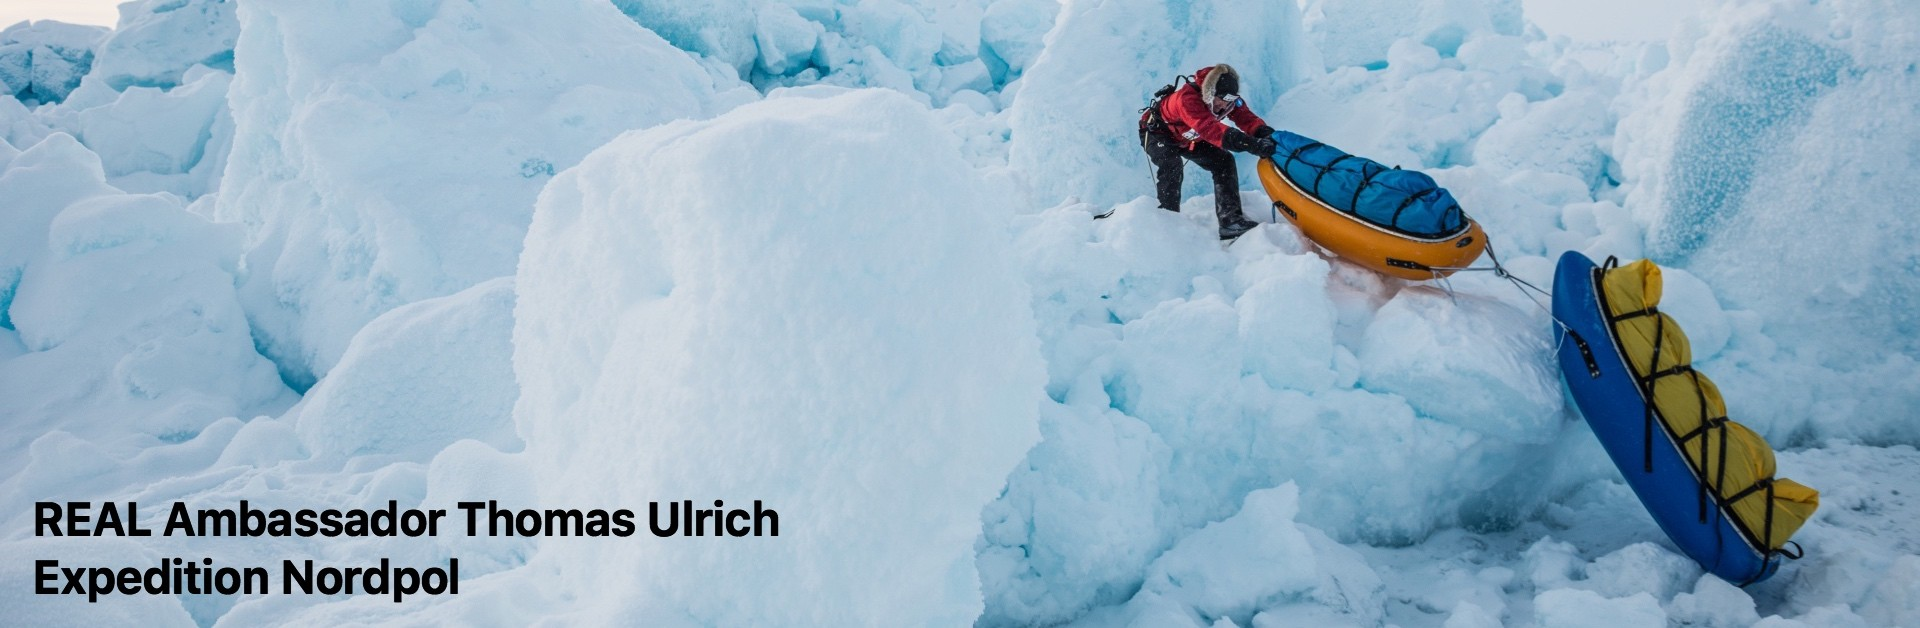 Thomas Ulrich Expedition Nordpol